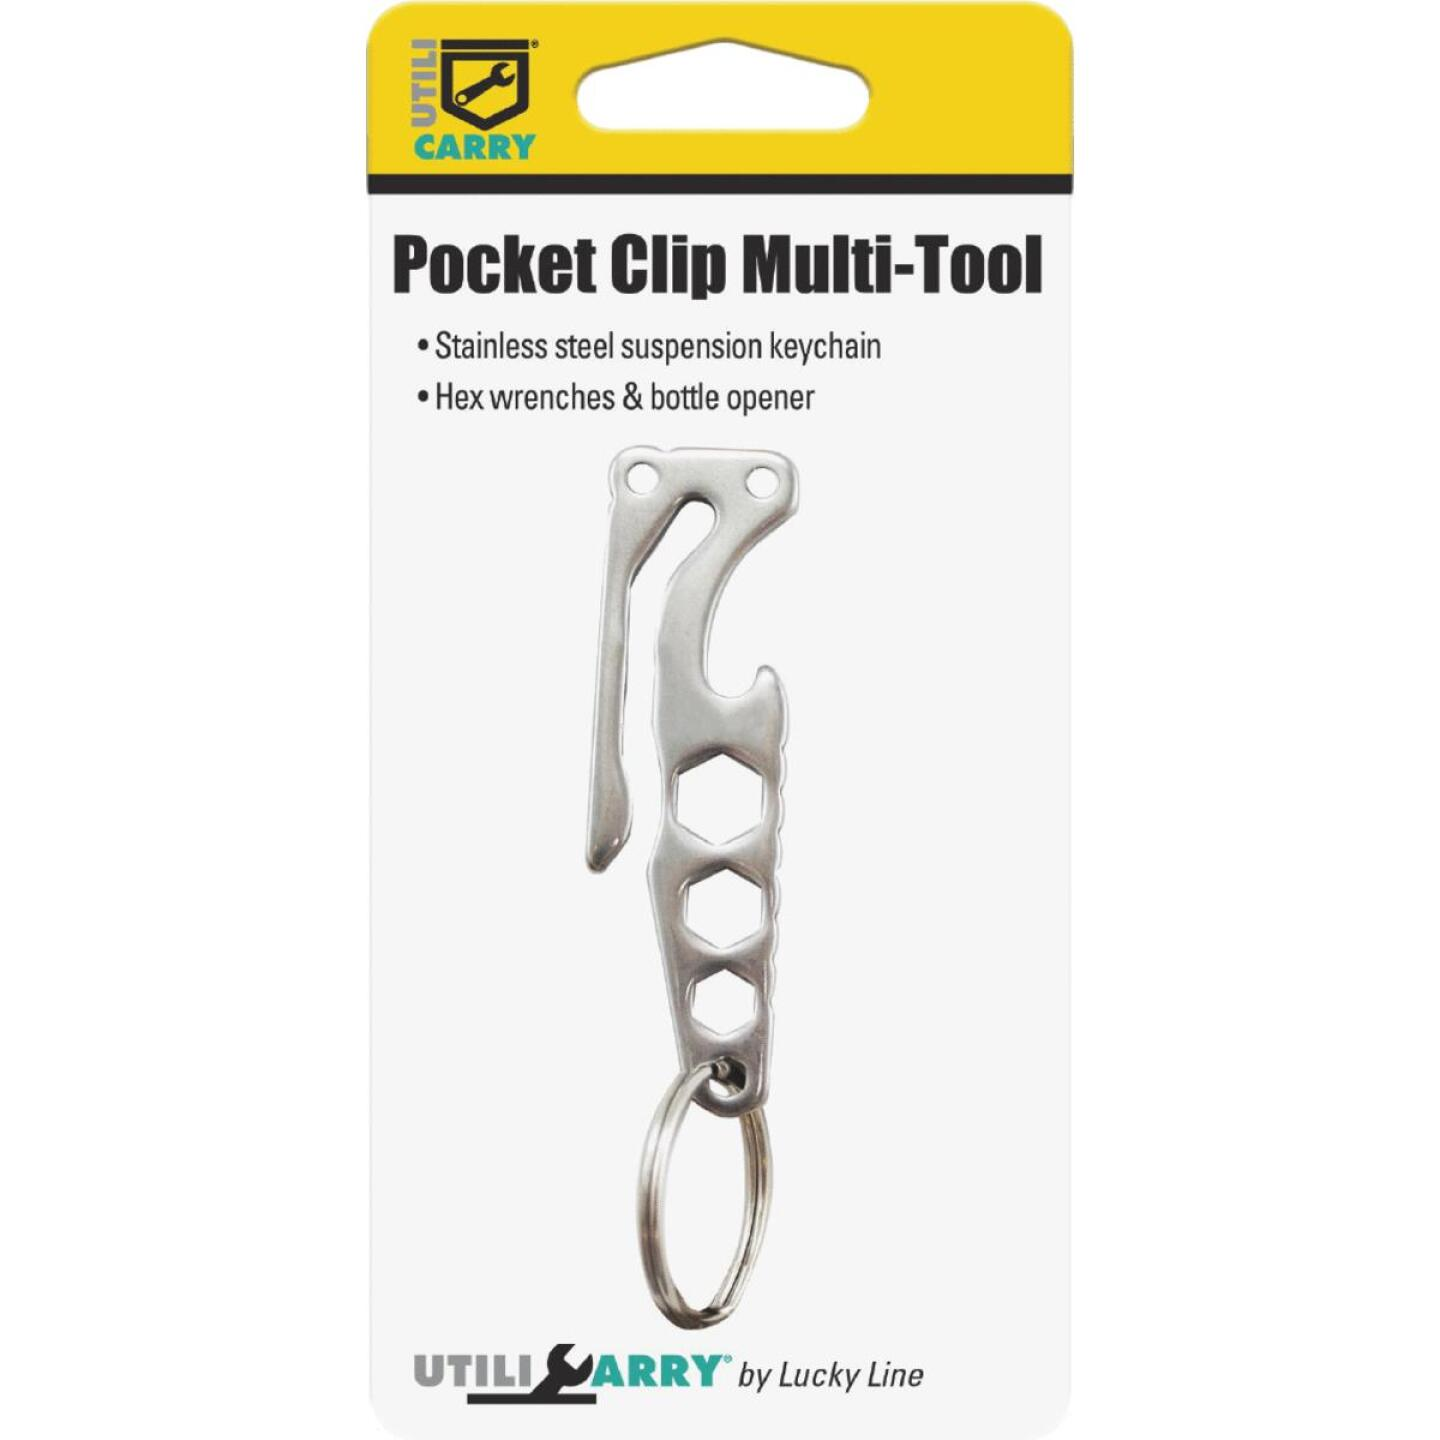 Lucky Line Utilicarry 4-In-1 Stainless Steel Pocket Clip Multi-Tool Image 2